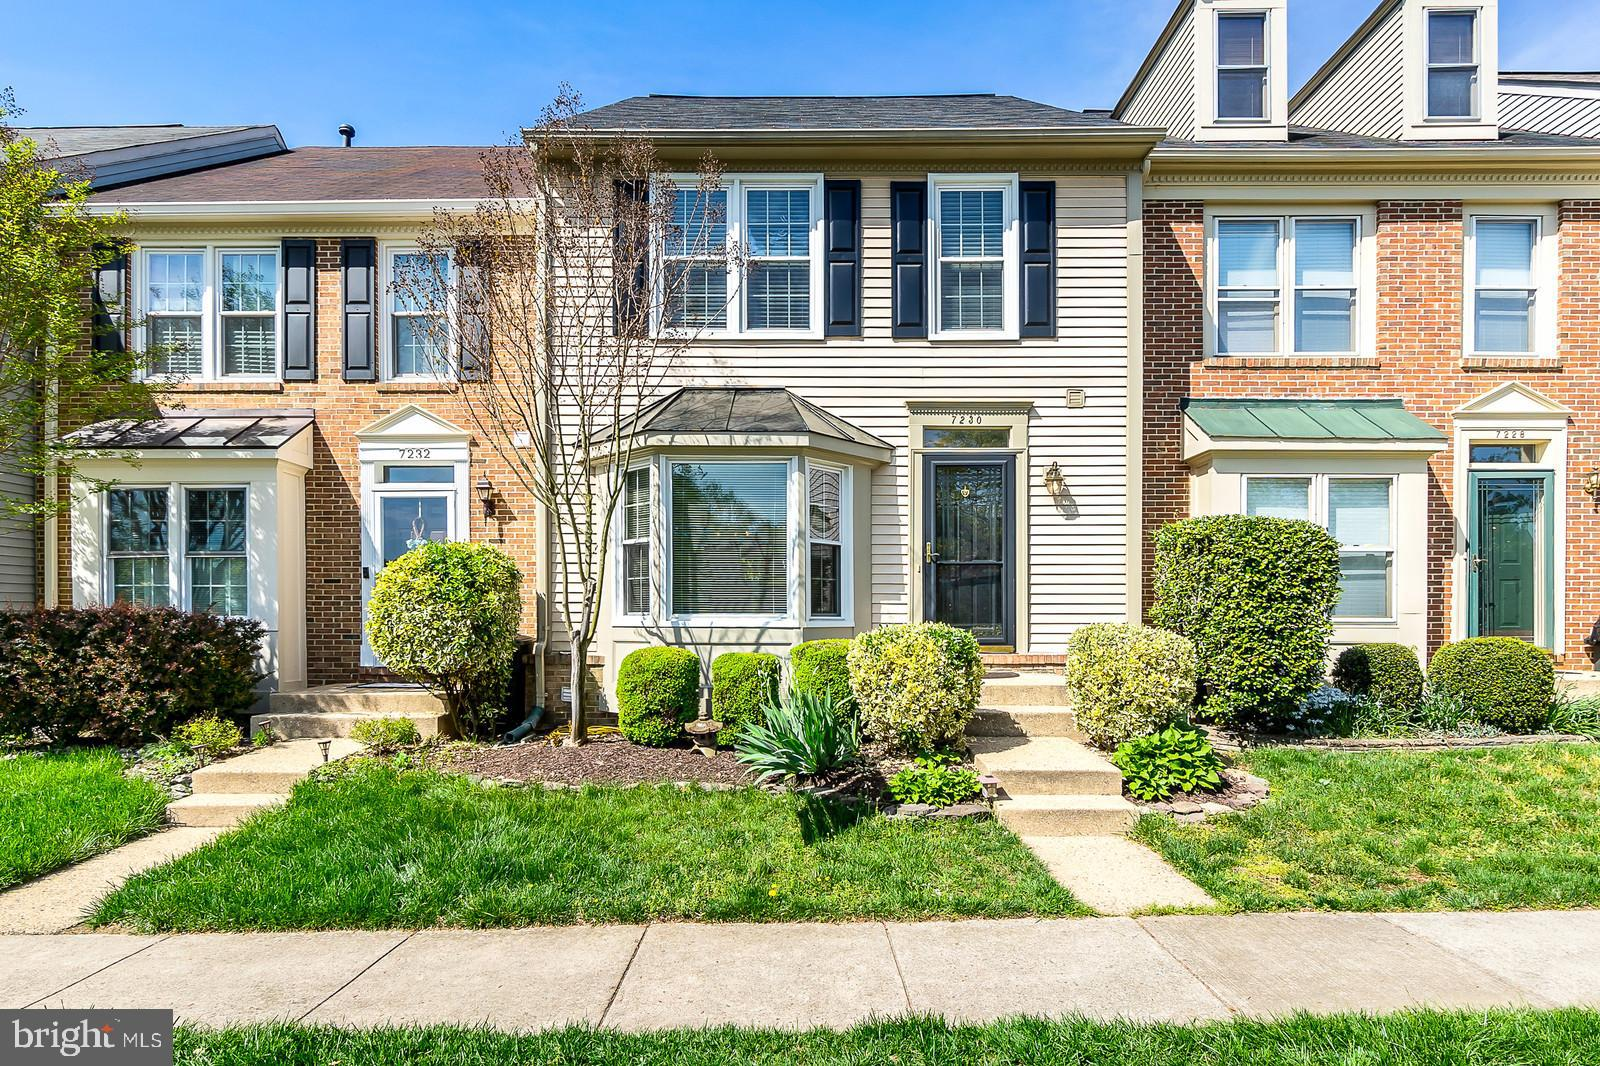 Stunning townhome in highly sought-after Kingstowne. Full of natural light, this home has upgrades galore. Gleaming hardwoods throughout the main and upper levels. Beautifully renovated, gourmet kitchen with island, cut-out to dining room, and mini-bar area. Off the kitchen, walk out onto the deck and enjoy a private, wooded view. A unique find in Kingstowne!  Upstairs, the master bedroom features vaulted ceilings and a newly remodeled, custom master bath with gorgeous tile. The oversized 2nd bedroom could easily be split into 2 rooms, if desired. Updated full hall bath. Head down to the lower level rec room with gas fireplace, upated full bath, and sizable storage. Walk right out to fenced-in backyard. Enjoy the lively community atmosphere. Just in time for summer - check out the pools, tennis courts, fitness centers, playgrounds, and jogging paths. Walk to shops and entertainment!  Conveniently located with easy access to the beltway and a metro bus stop just steps away. Open Houses Saturday 4/27 from 10-12 and Sunday 4/28 from 2:45-4:45